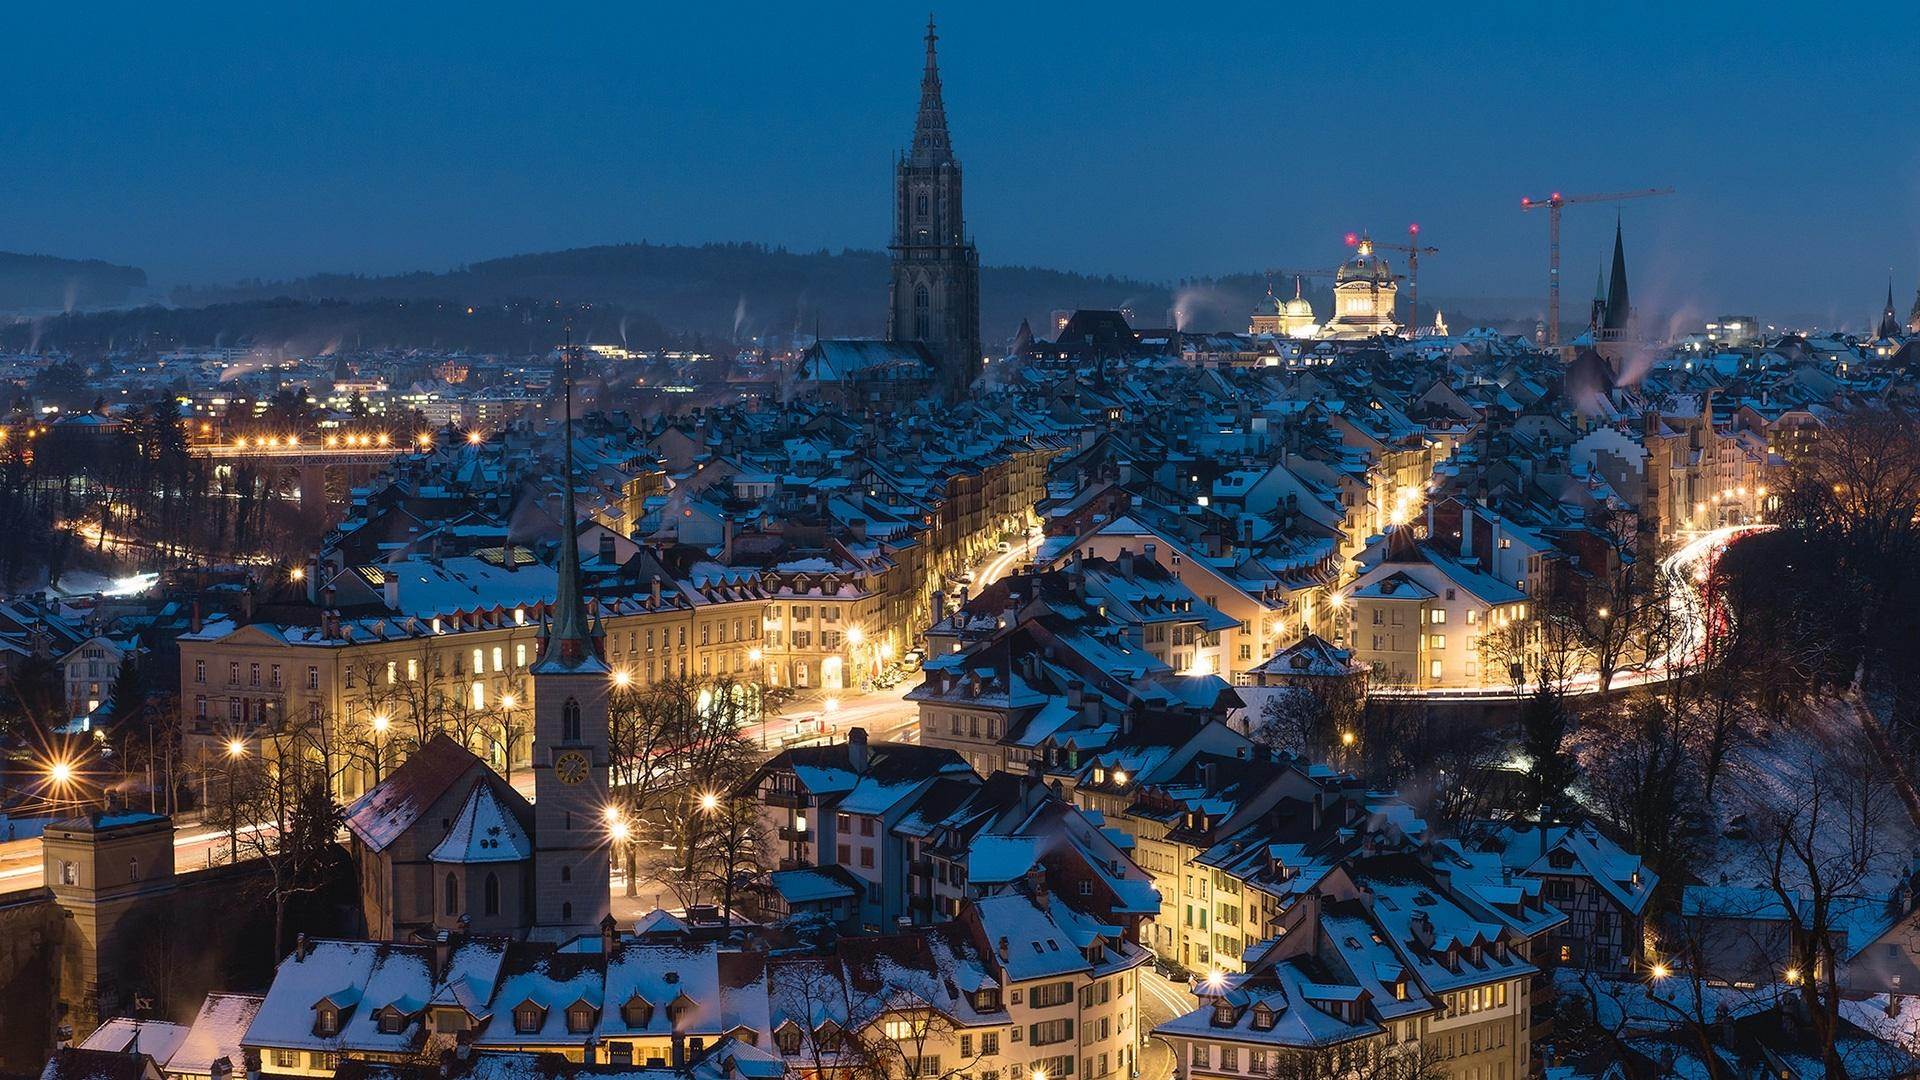 Winter Night In Bern HD Wallpaper | Wallpaper Studio 10 | Tens of ...